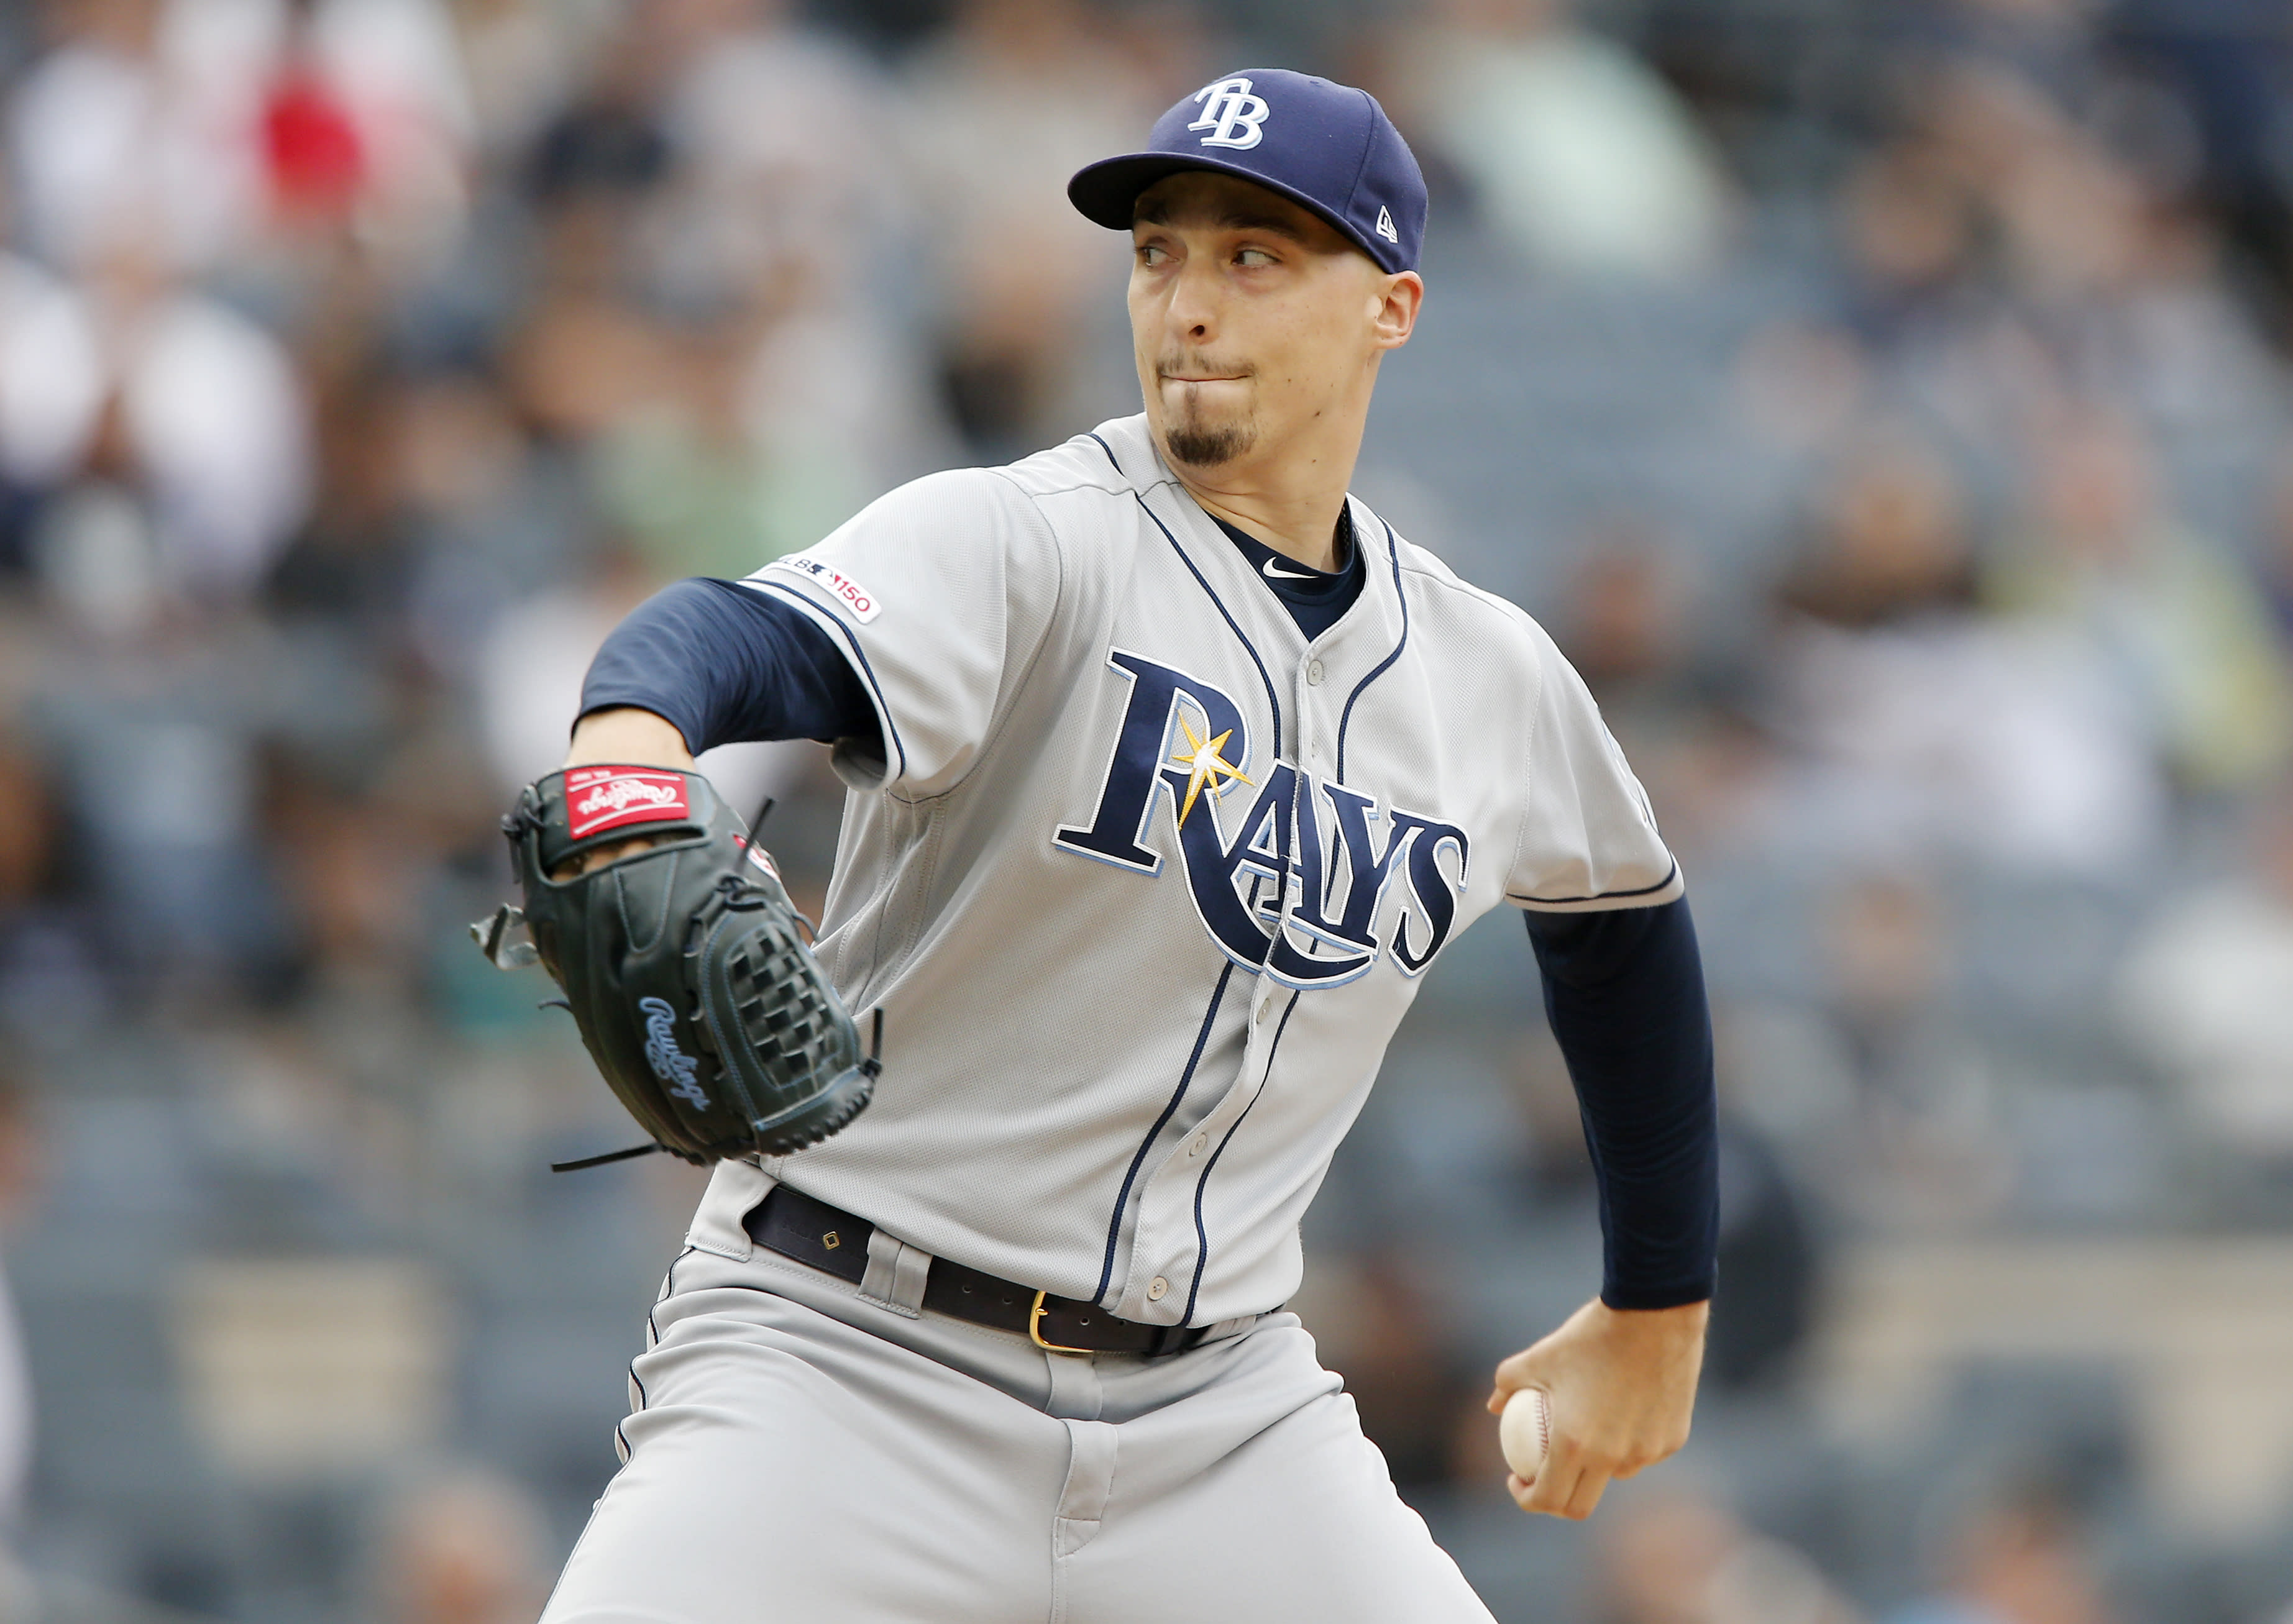 World Series Game 6: Snell takes the mound for the Rays